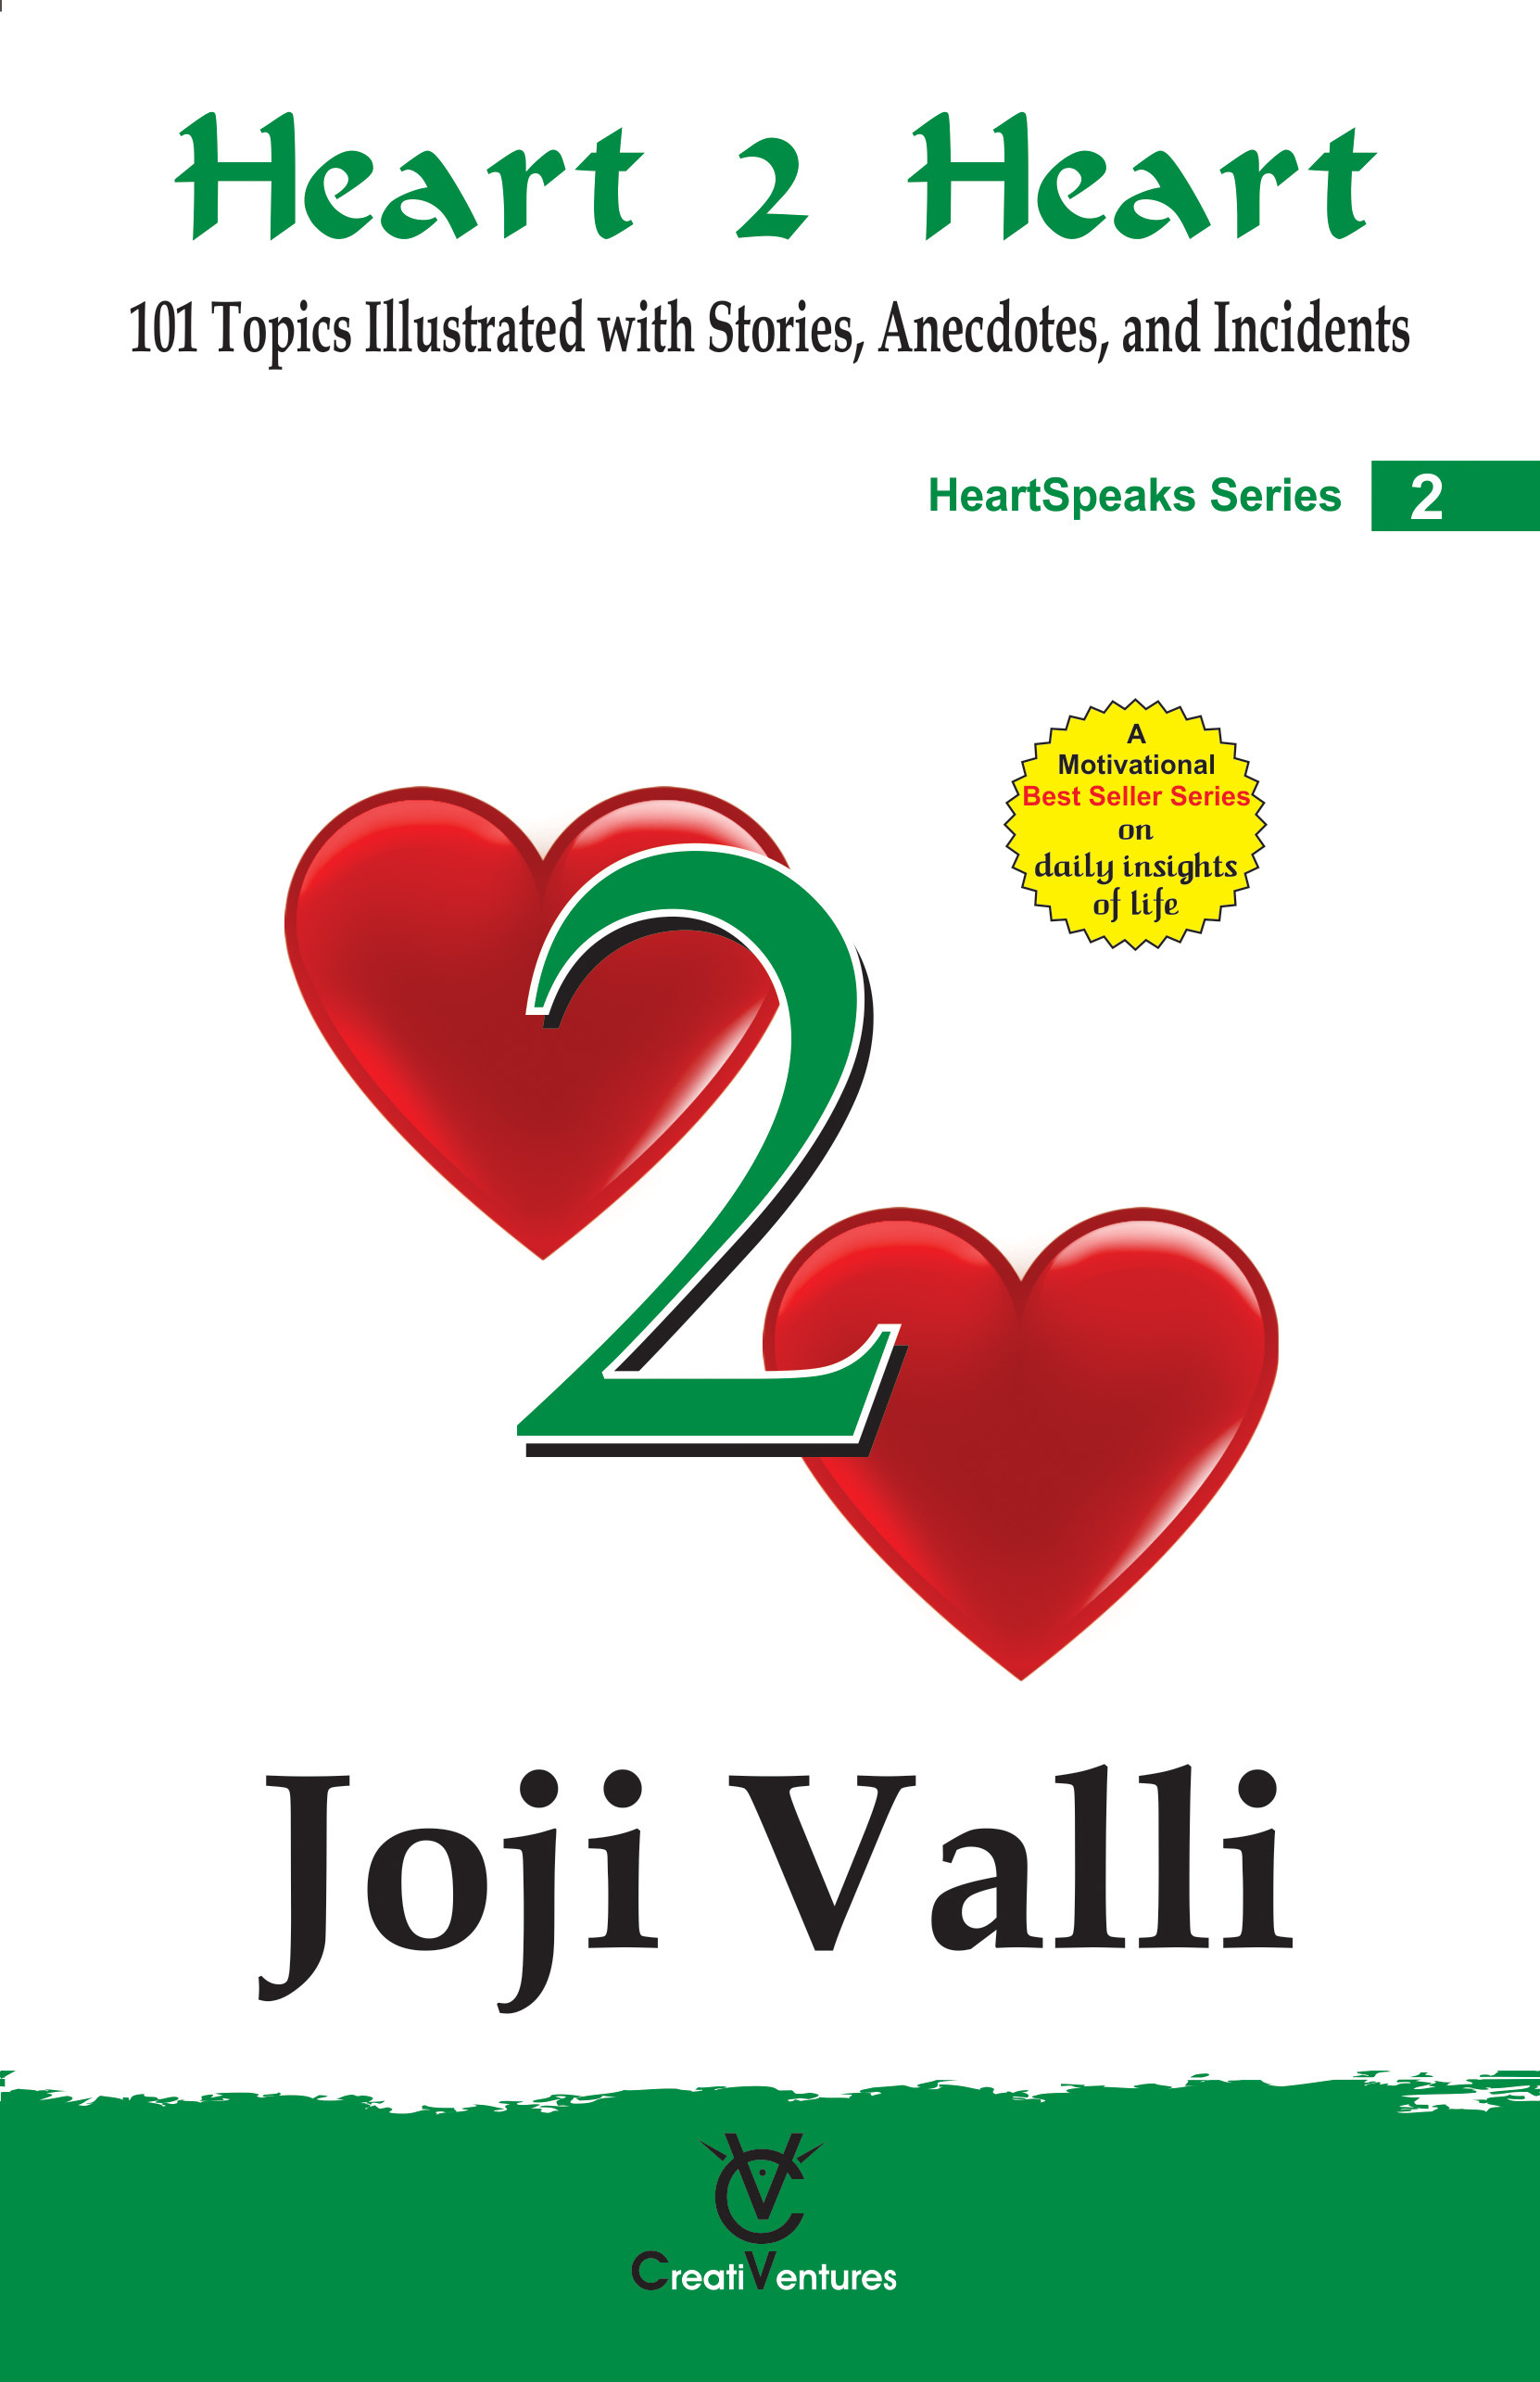 Heart 2 Heart: HeartSpeaks Series - 2 (101 Topics Illustrated with Stories, Anecdotes, and Incidents) Dr. Joji Valli